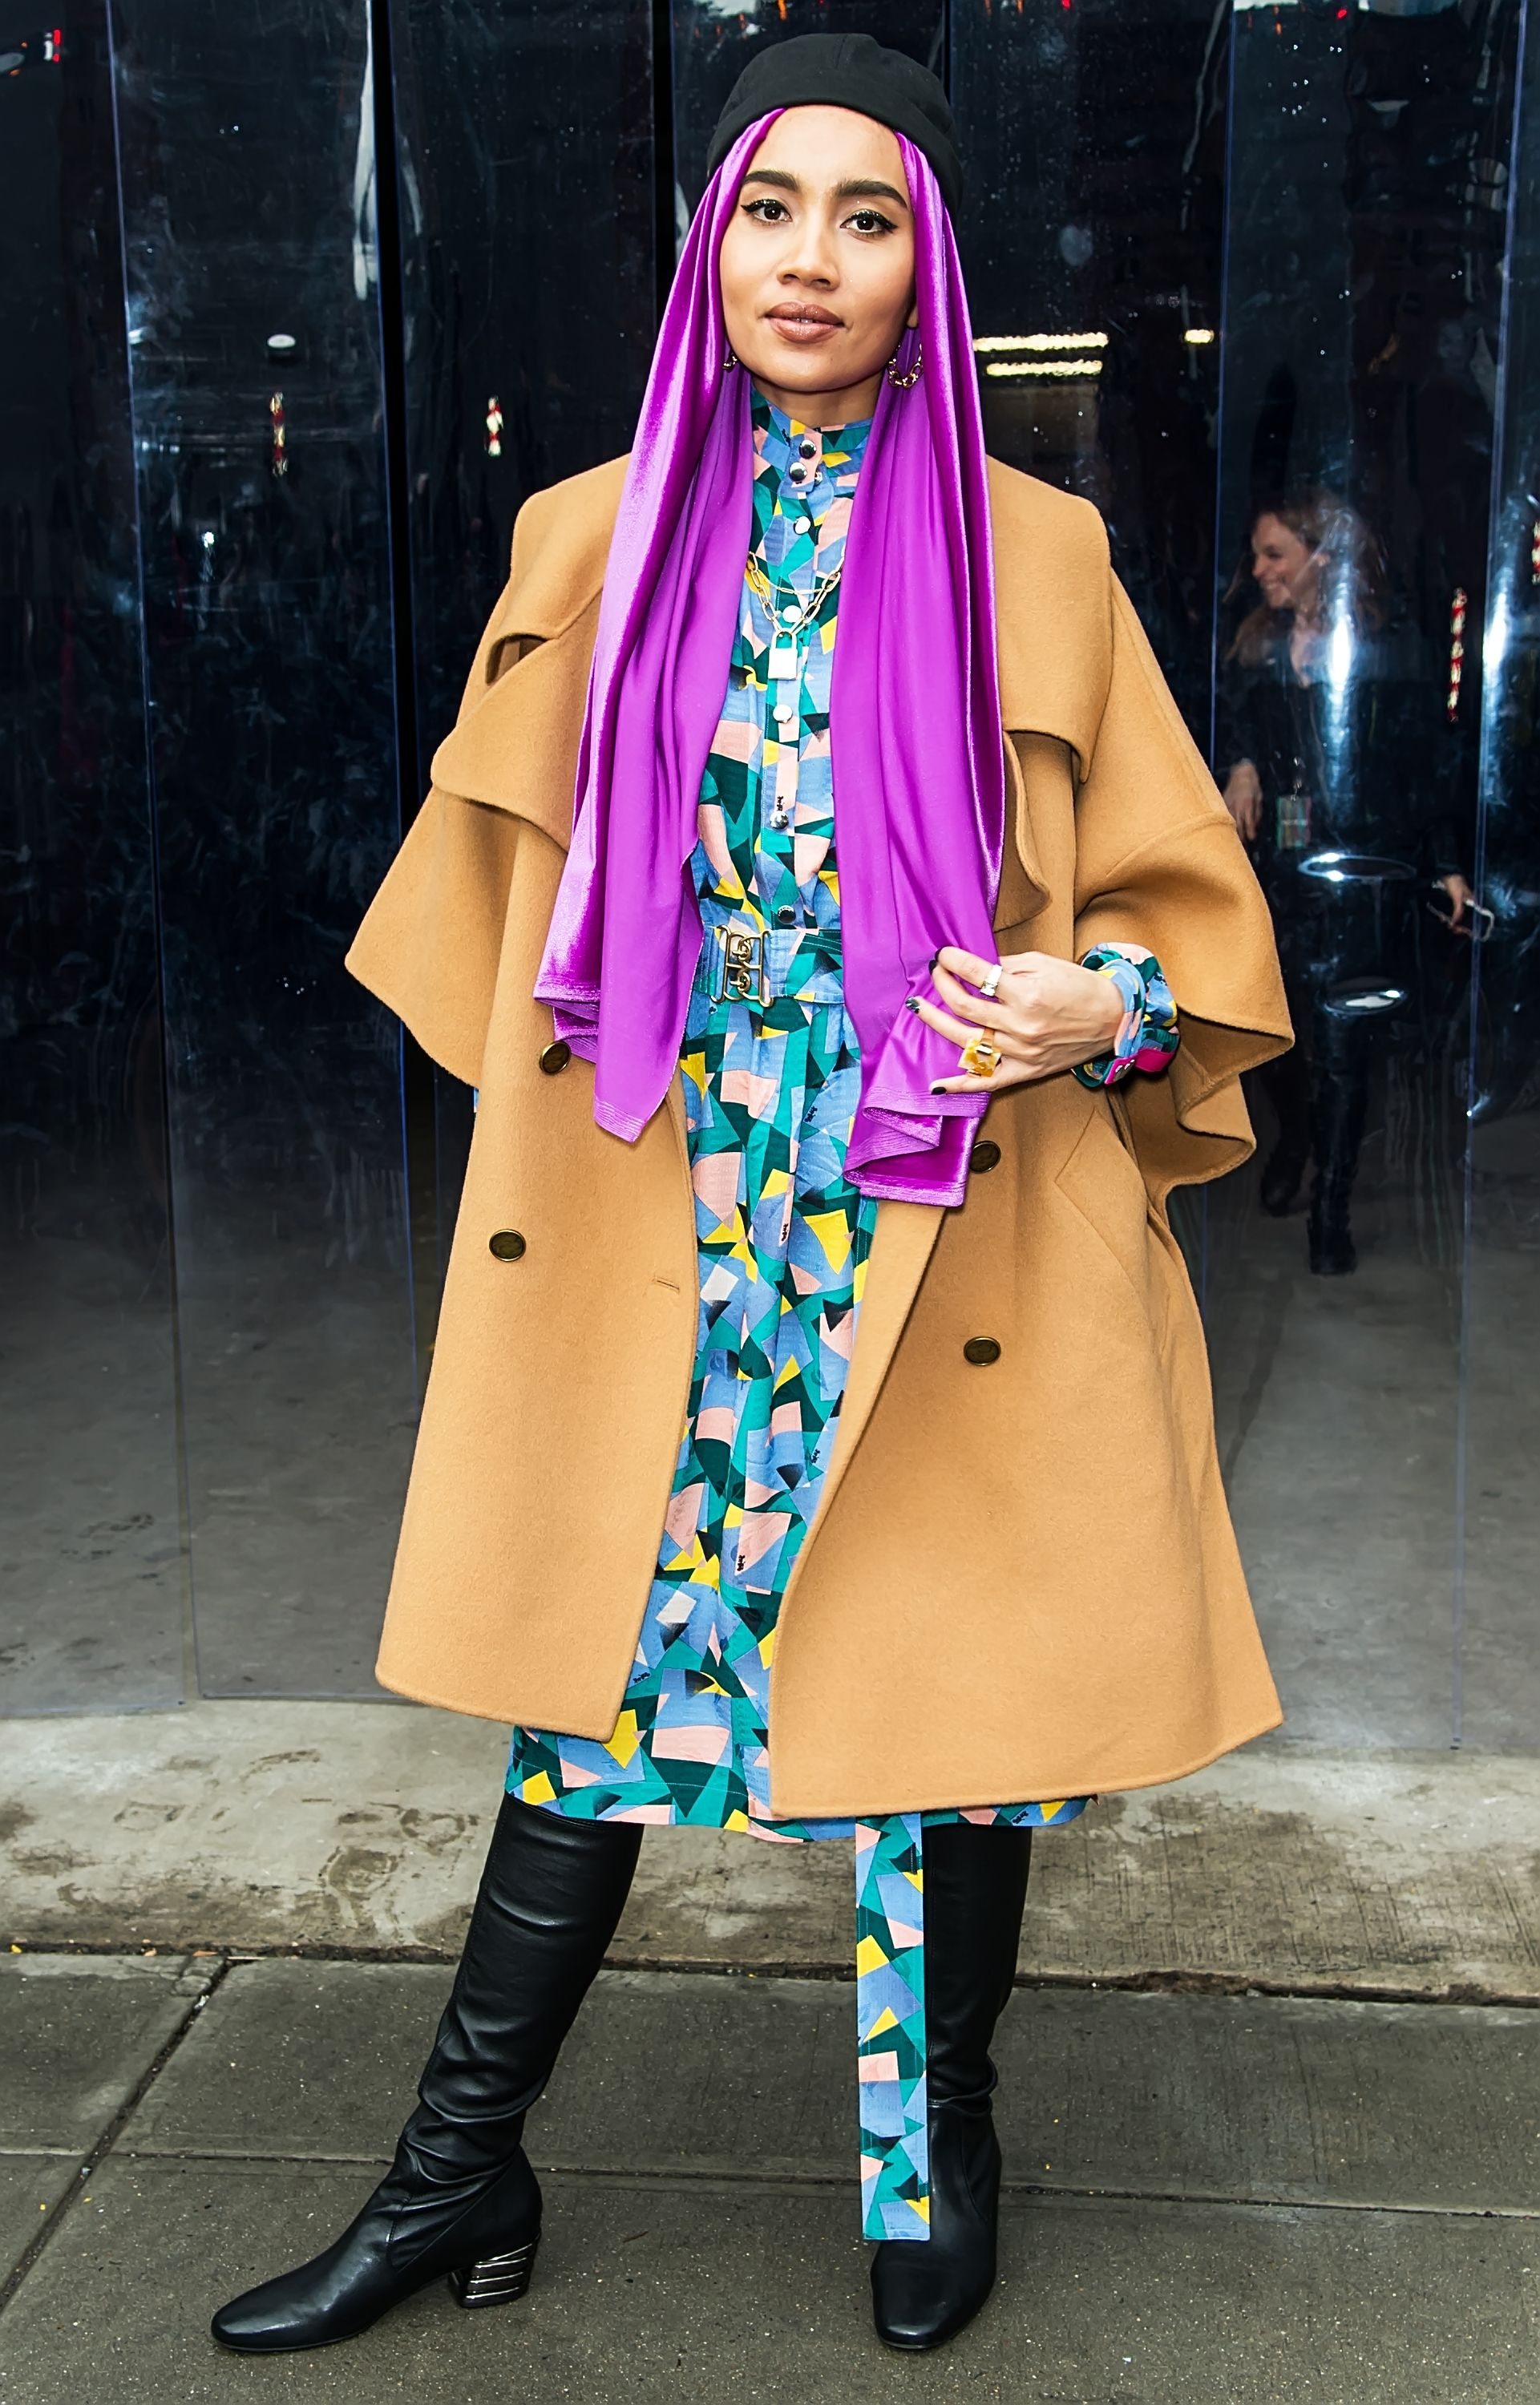 new york, new york   february 11 singer songwriter yuna is seen leaving the coach 1941 fashion show during new york fashion week on february 11, 2020 in new york city photo by gilbert carrasquillogc images